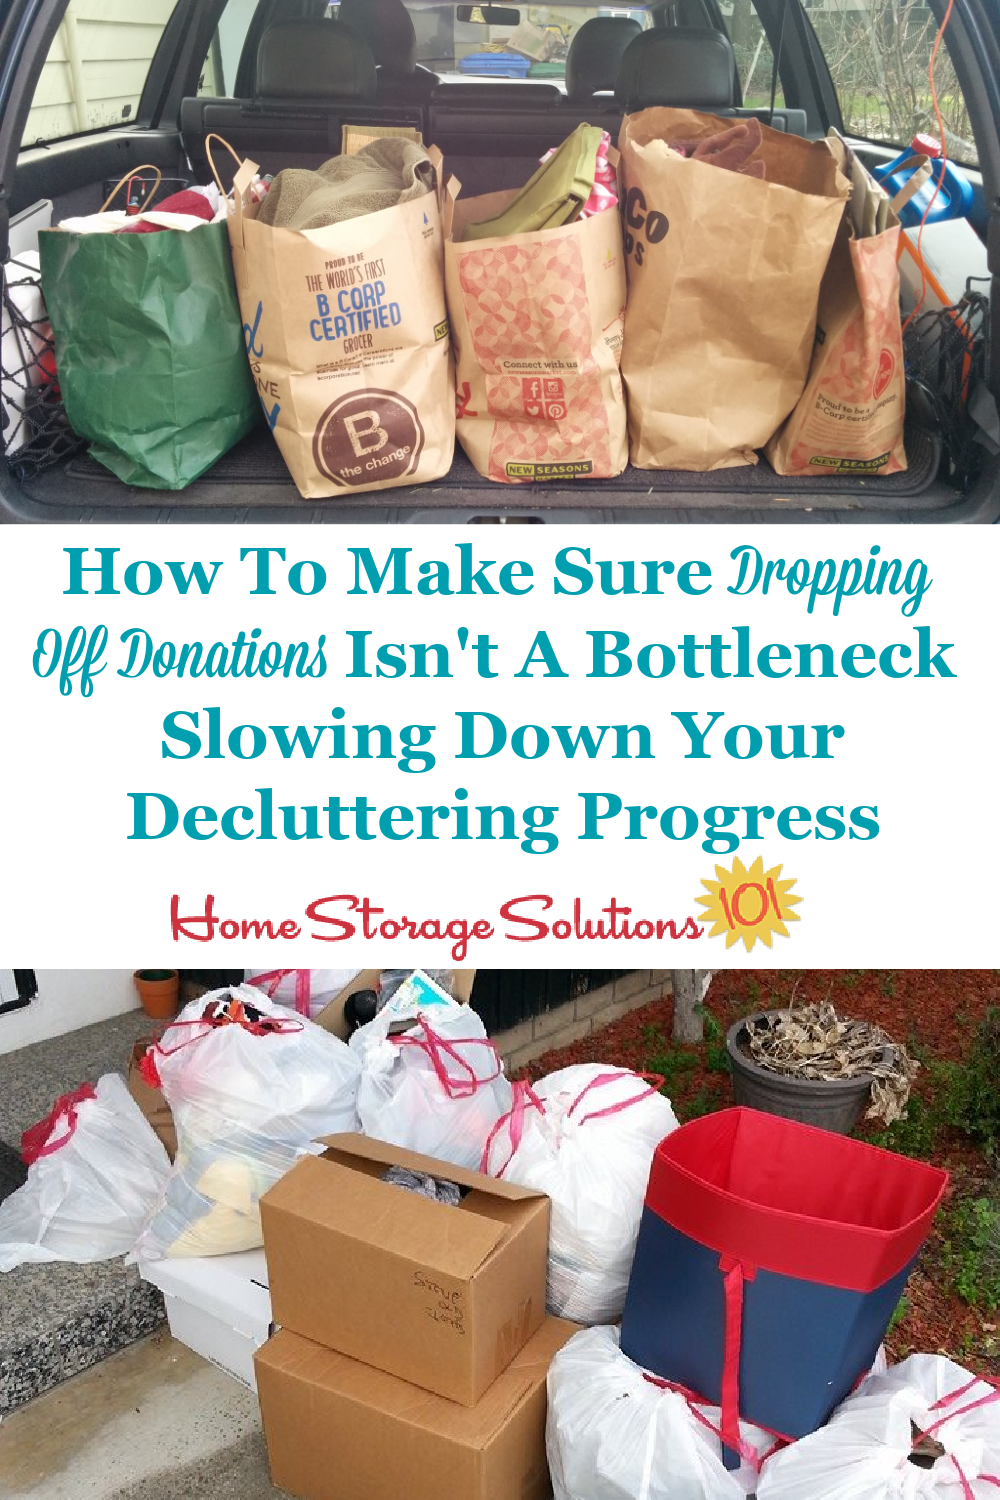 How to make sure dropping off donations isn't a bottleneck slowing down your decluttering progress {on Home Storage Solutions 101} #Declutter365 #DropOffDonations #DonateClutter